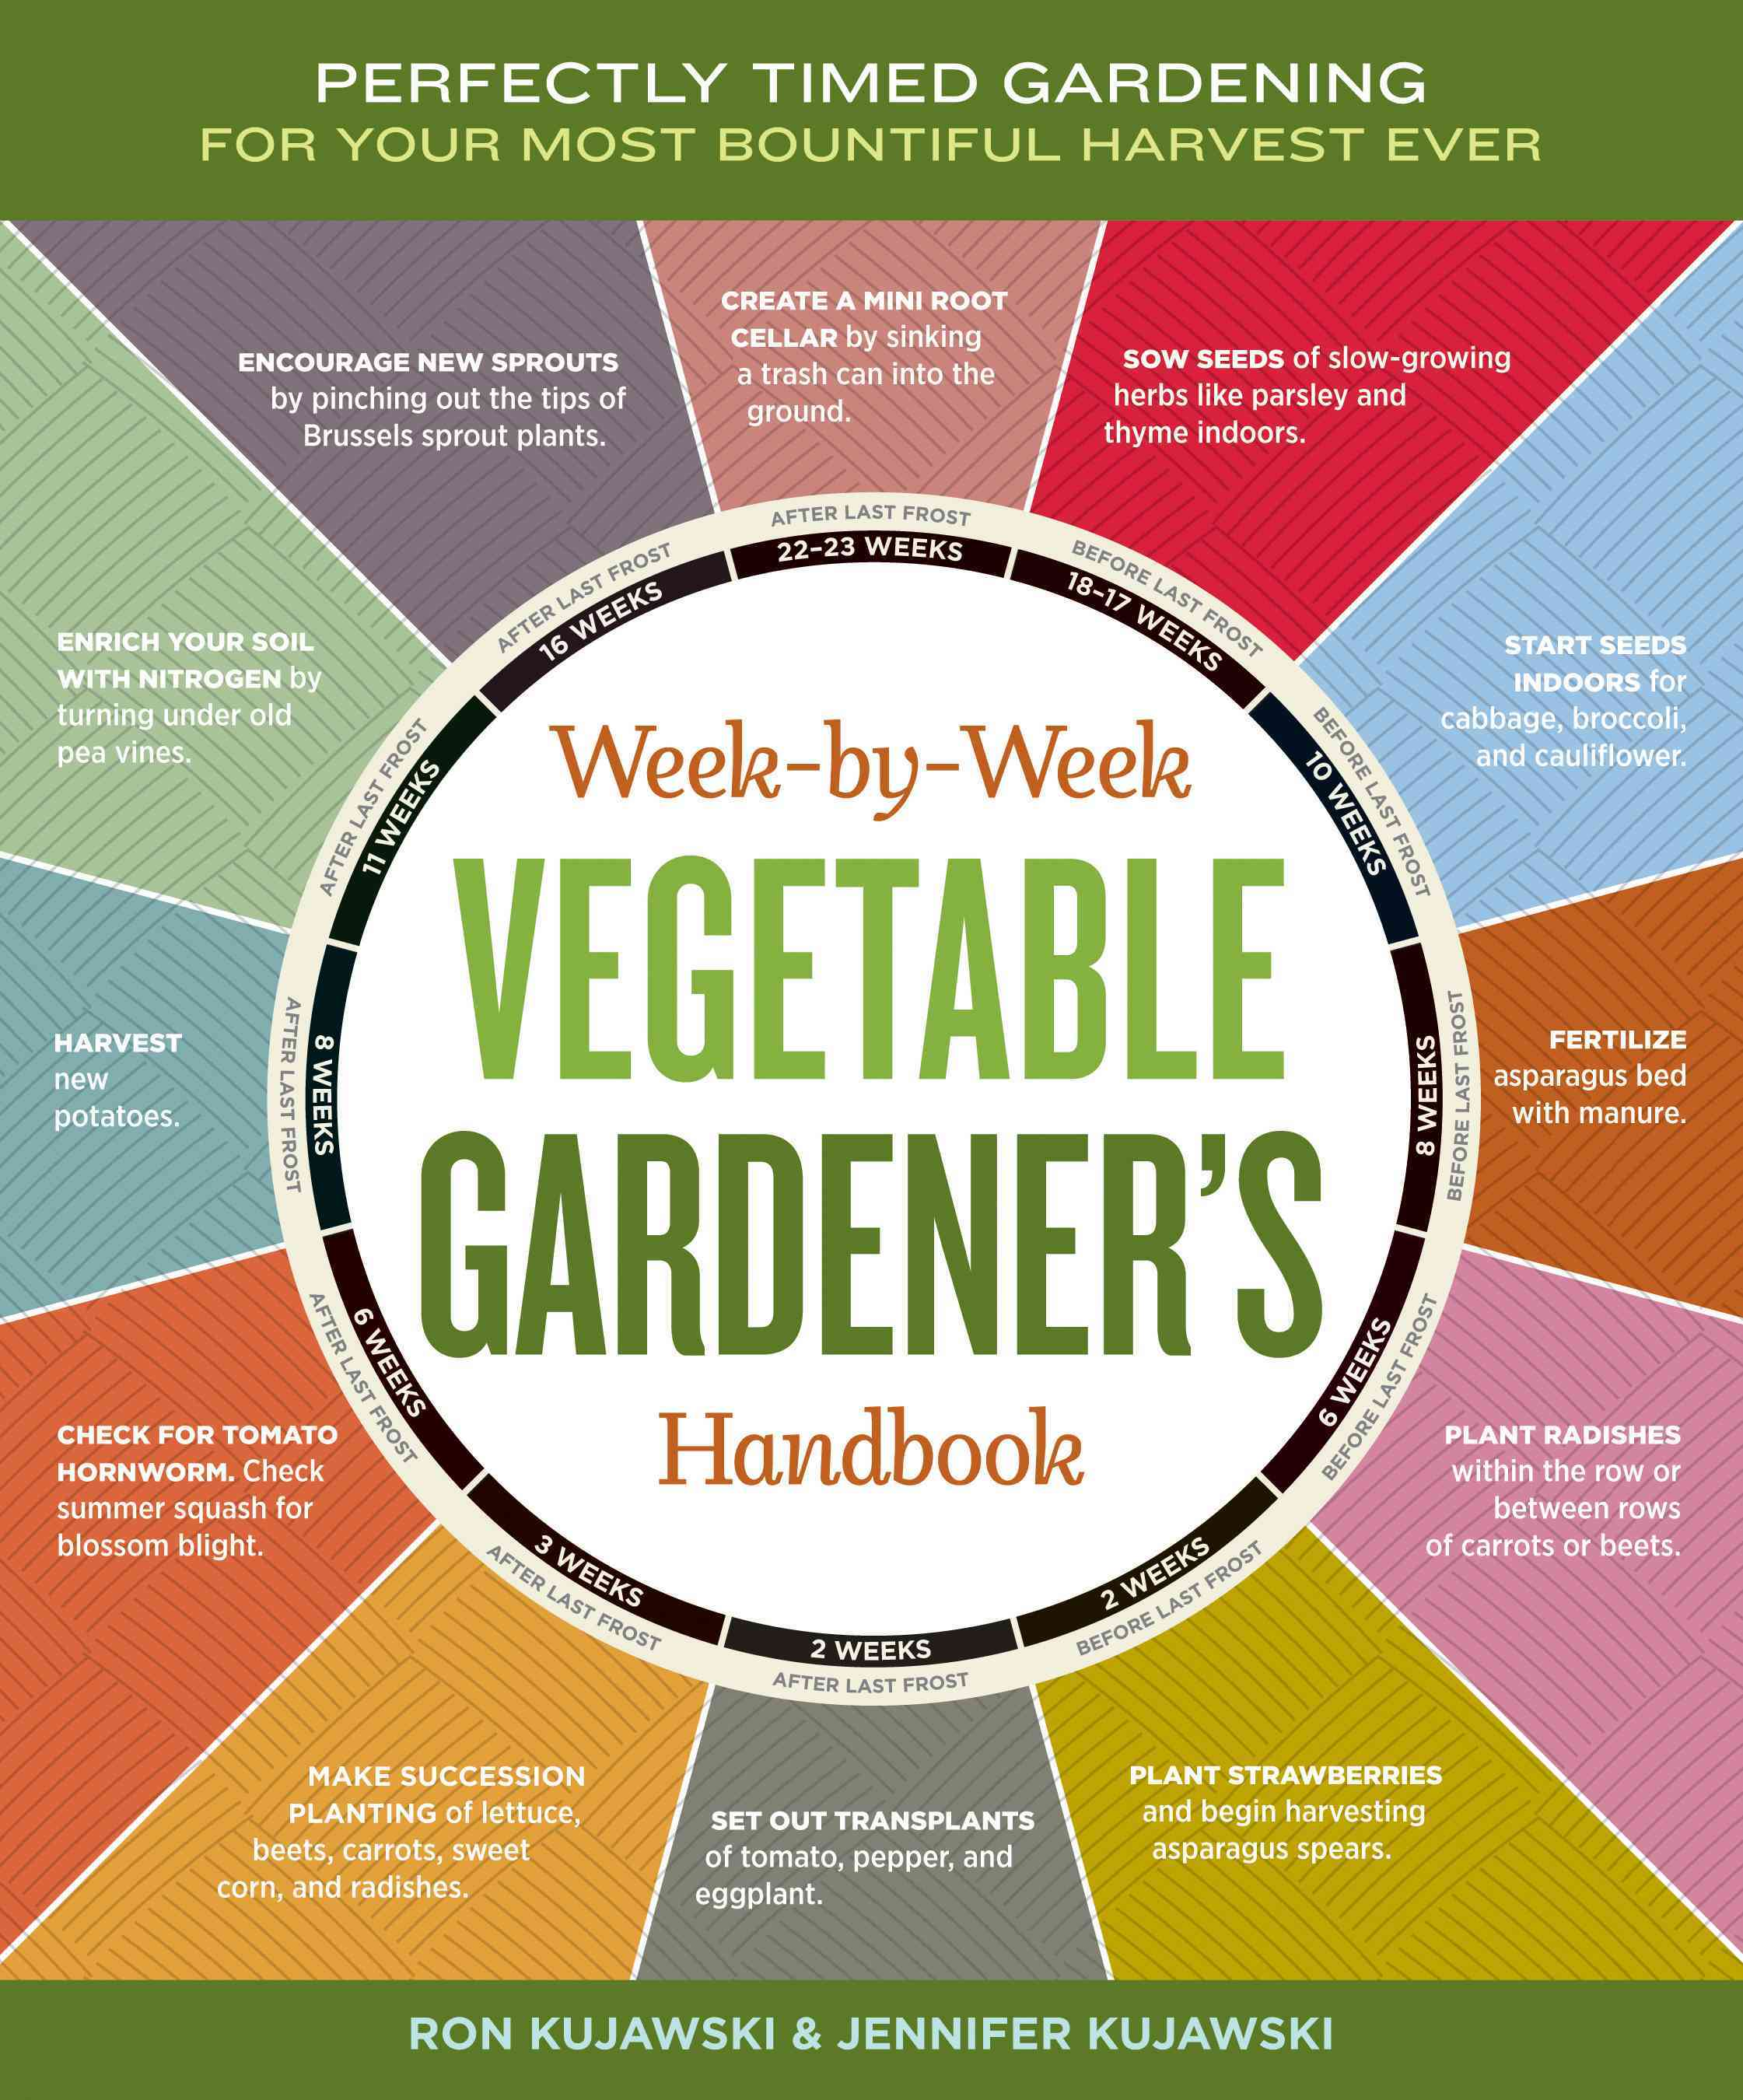 Week-by-Week Vegetable Gardener's Handbook: Perfectly Timed Gardening for your Most Bountiful Harvest Ever (Paperback) - Thumbnail 0